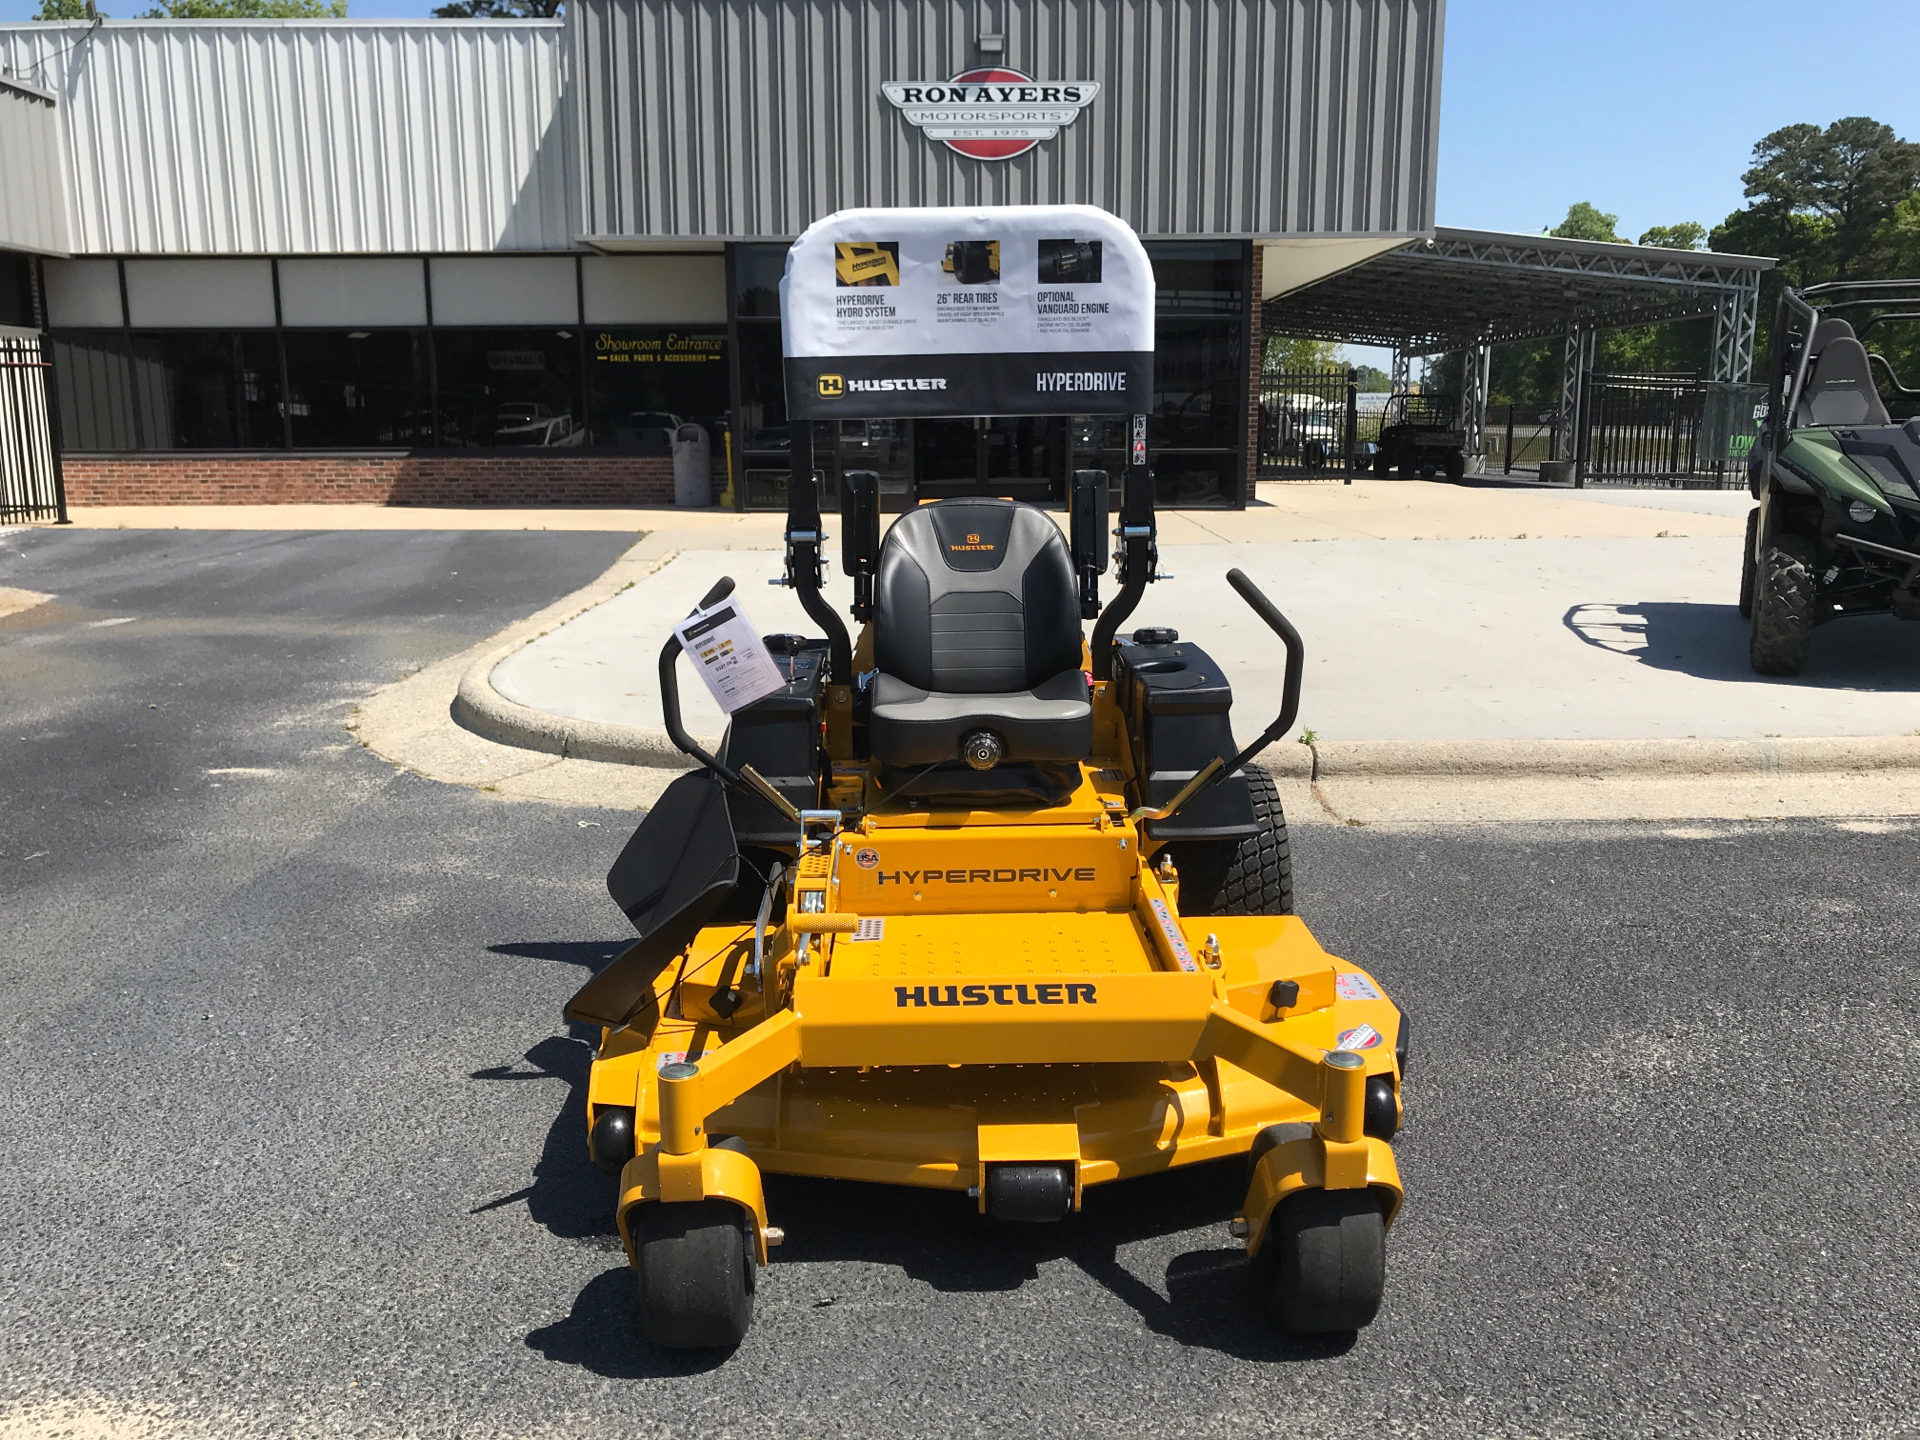 2021 Hustler Turf Equipment Super Z HyperDrive 60 in. Vanguard Big Block EFI 37 hp with Oil Guard in Greenville, North Carolina - Photo 1